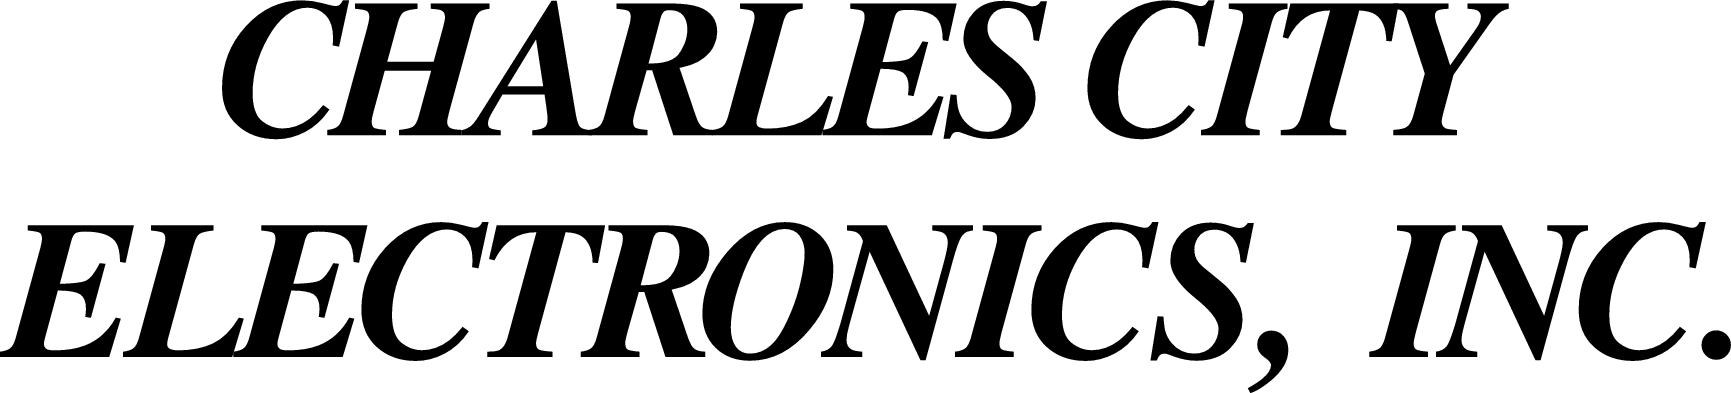 Charles City Electronics, Inc.